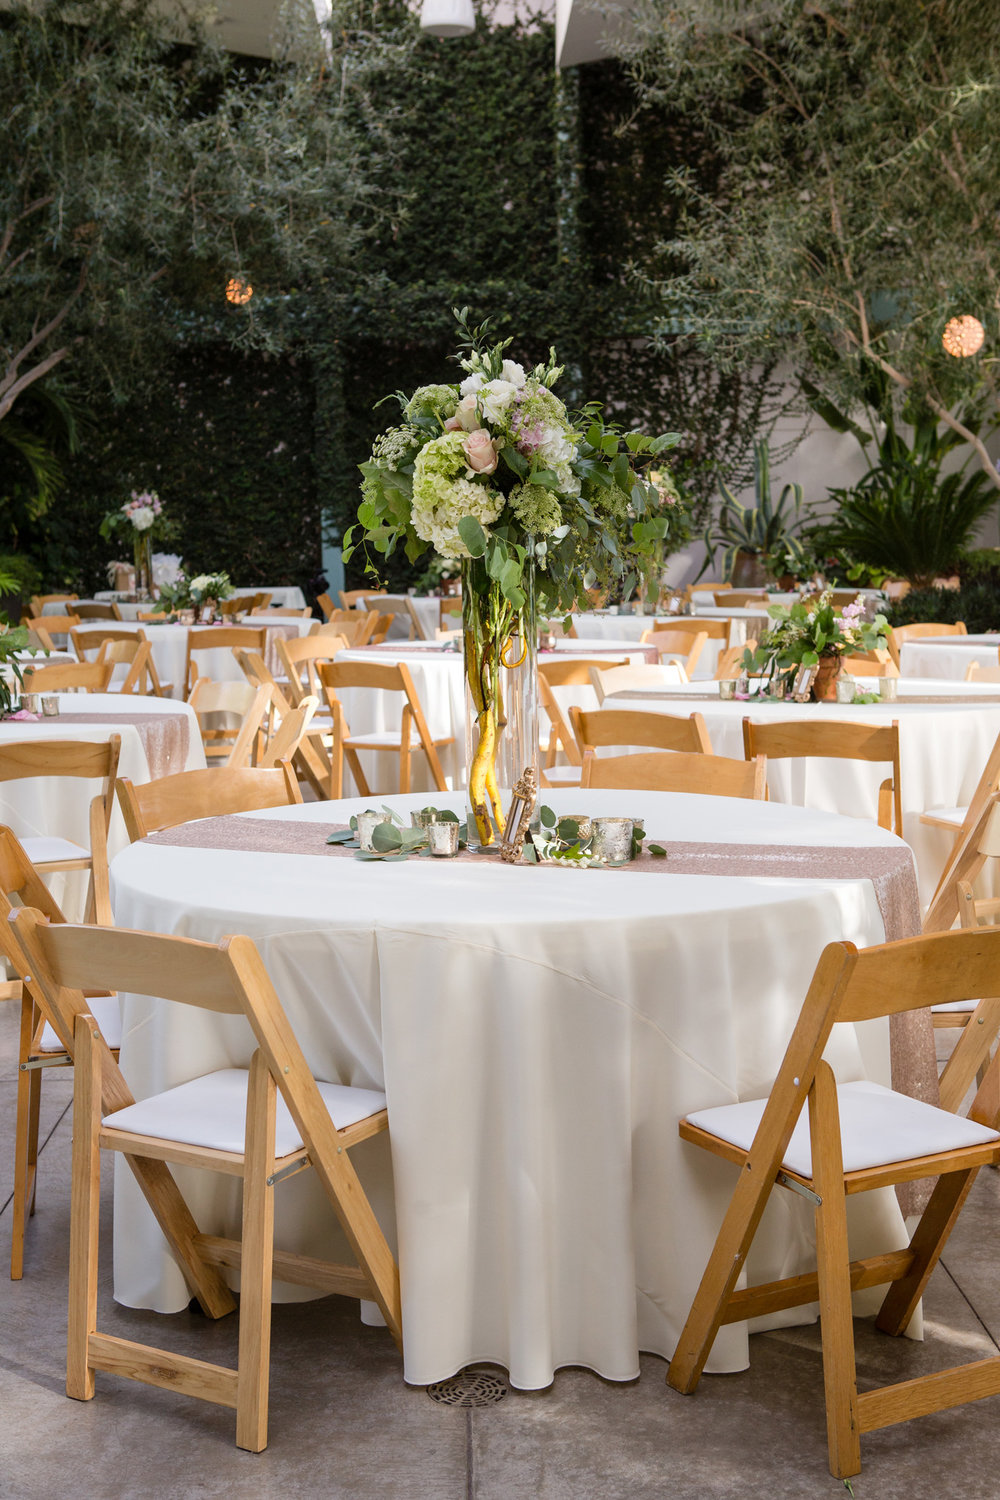 Red Butte Garden Wedding | Salt Lake City Wedding | Gold and Rose Gold Wedding | Michelle Leo Events | Utah Event Planner and Designer | Melissa Kelsey Photography